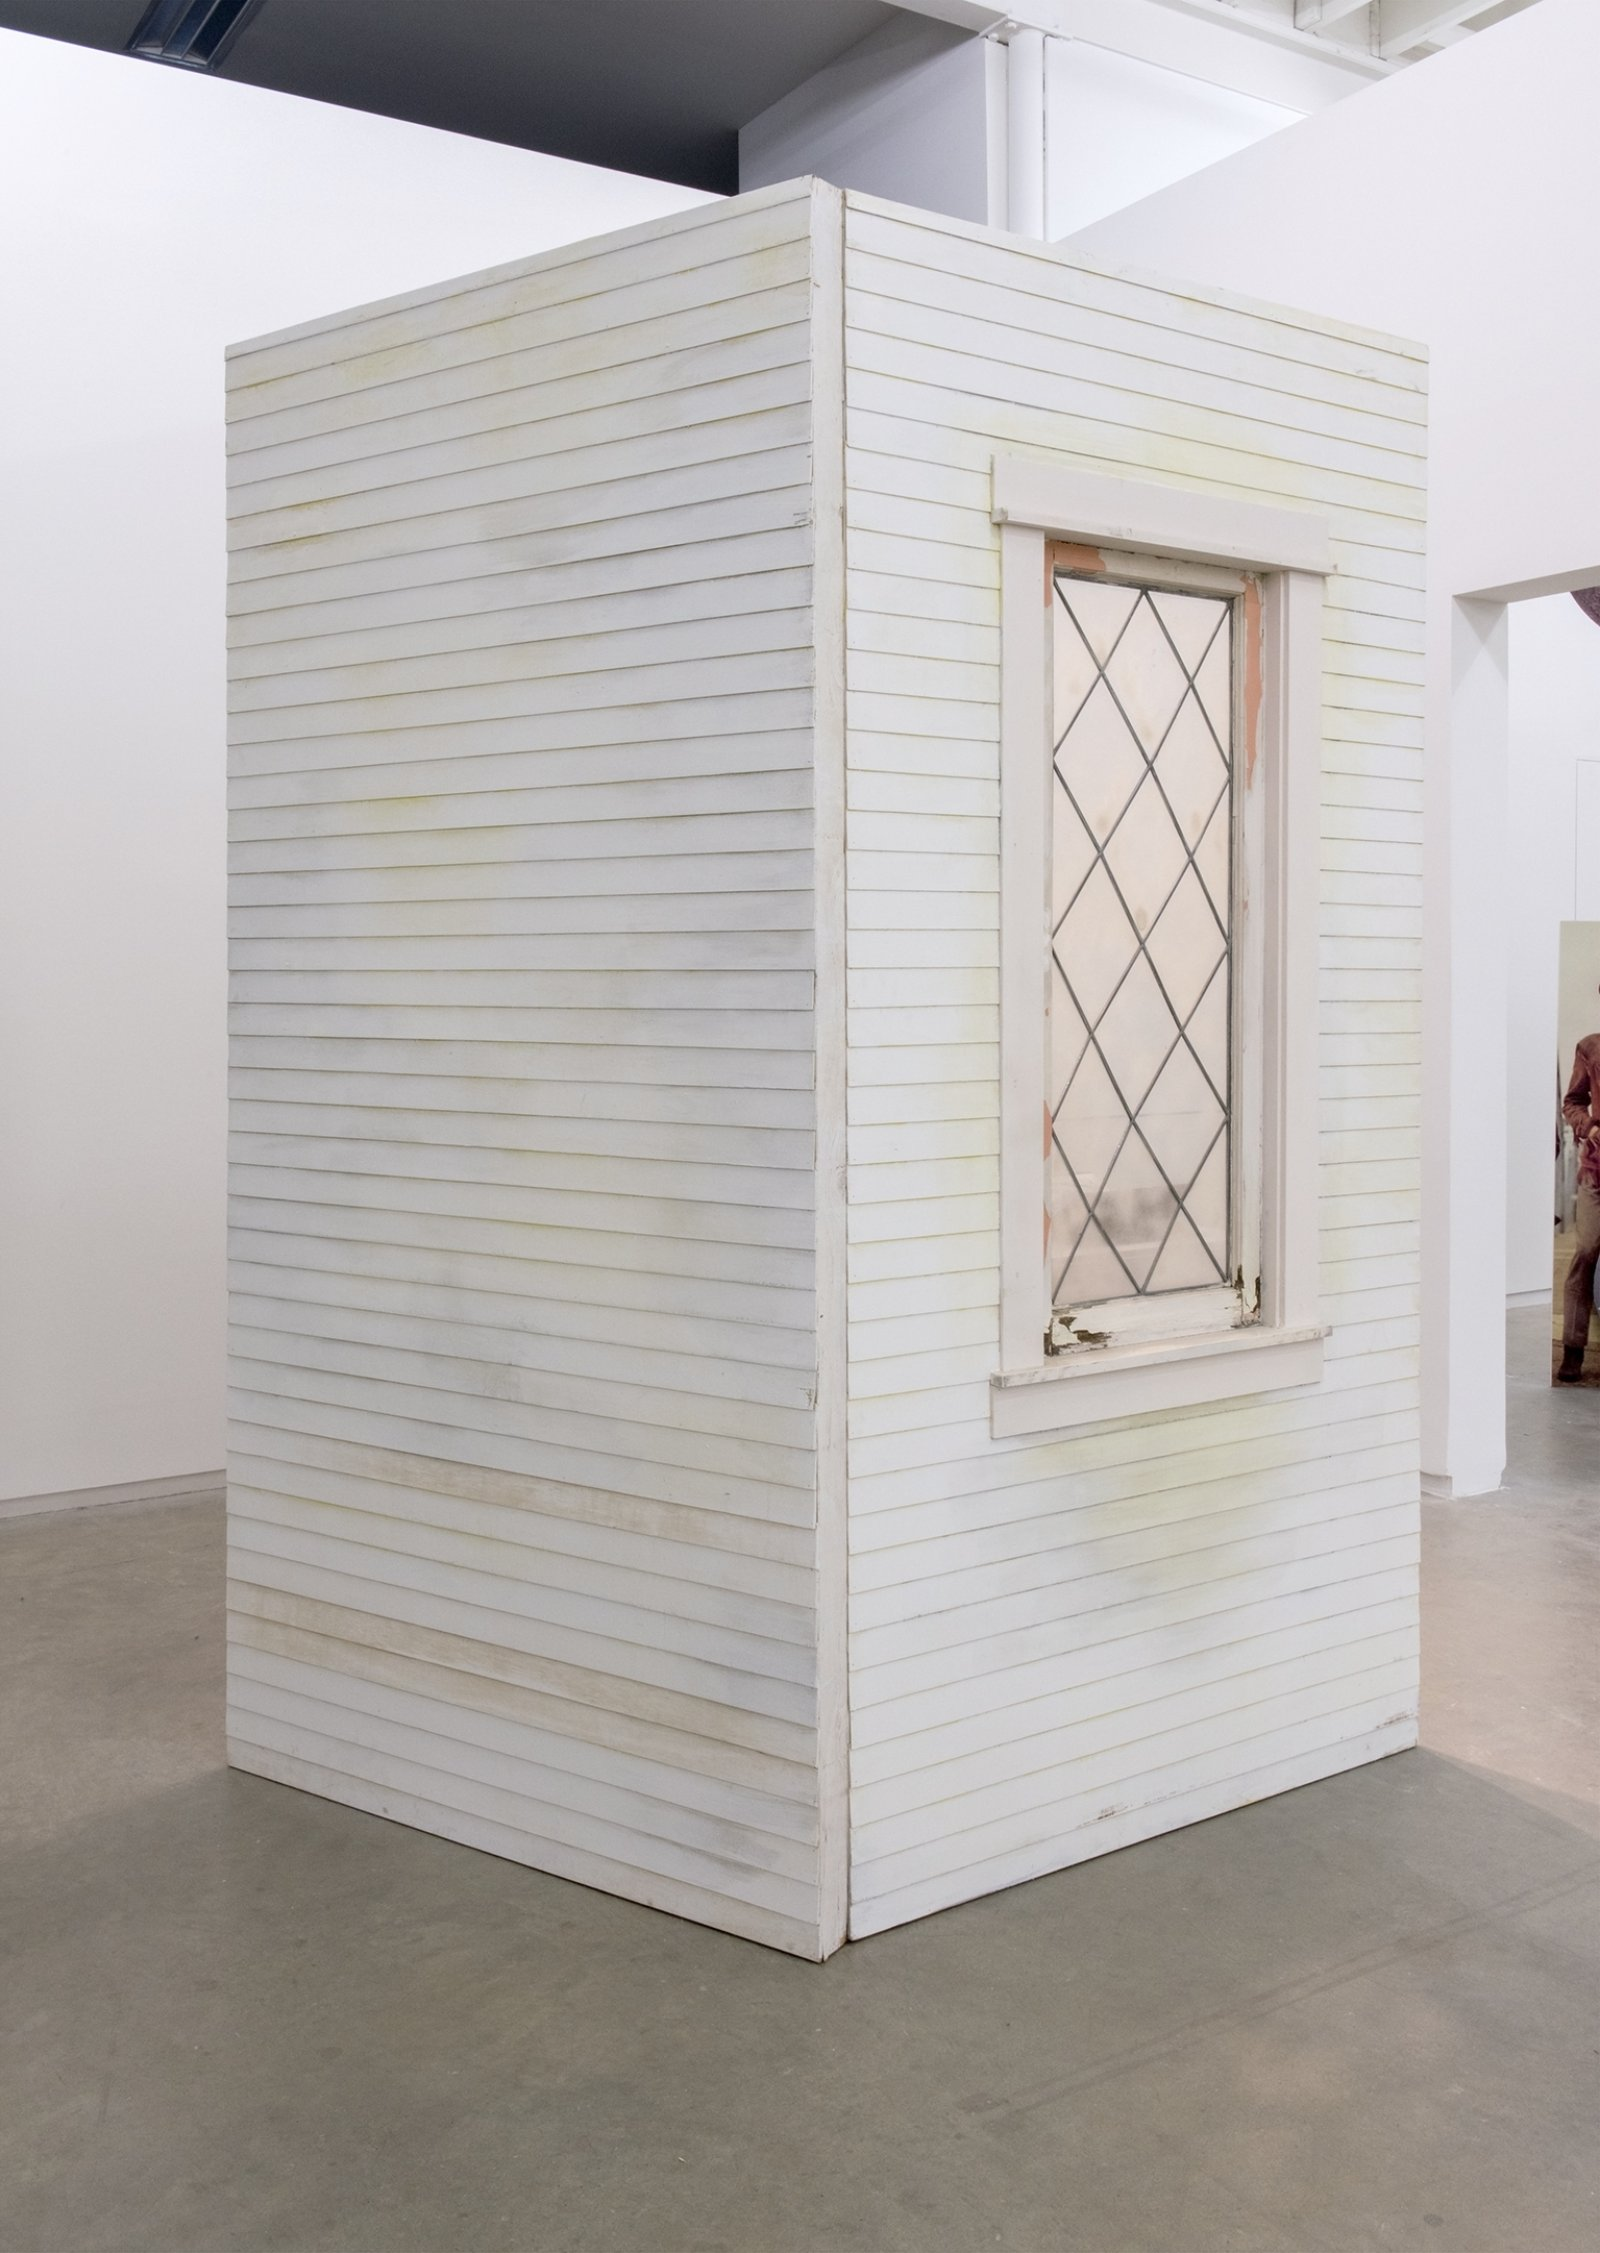 Geoffrey Farmer, Journals with Norman Bates (Fountain), 2014, vitrine with 8 cut-outs collaged on foamcore, 2 wooden wall façades, paint, window, sandbags, framed cut-outs and ink mounted on paper, dimensions variable by Geoffrey Farmer